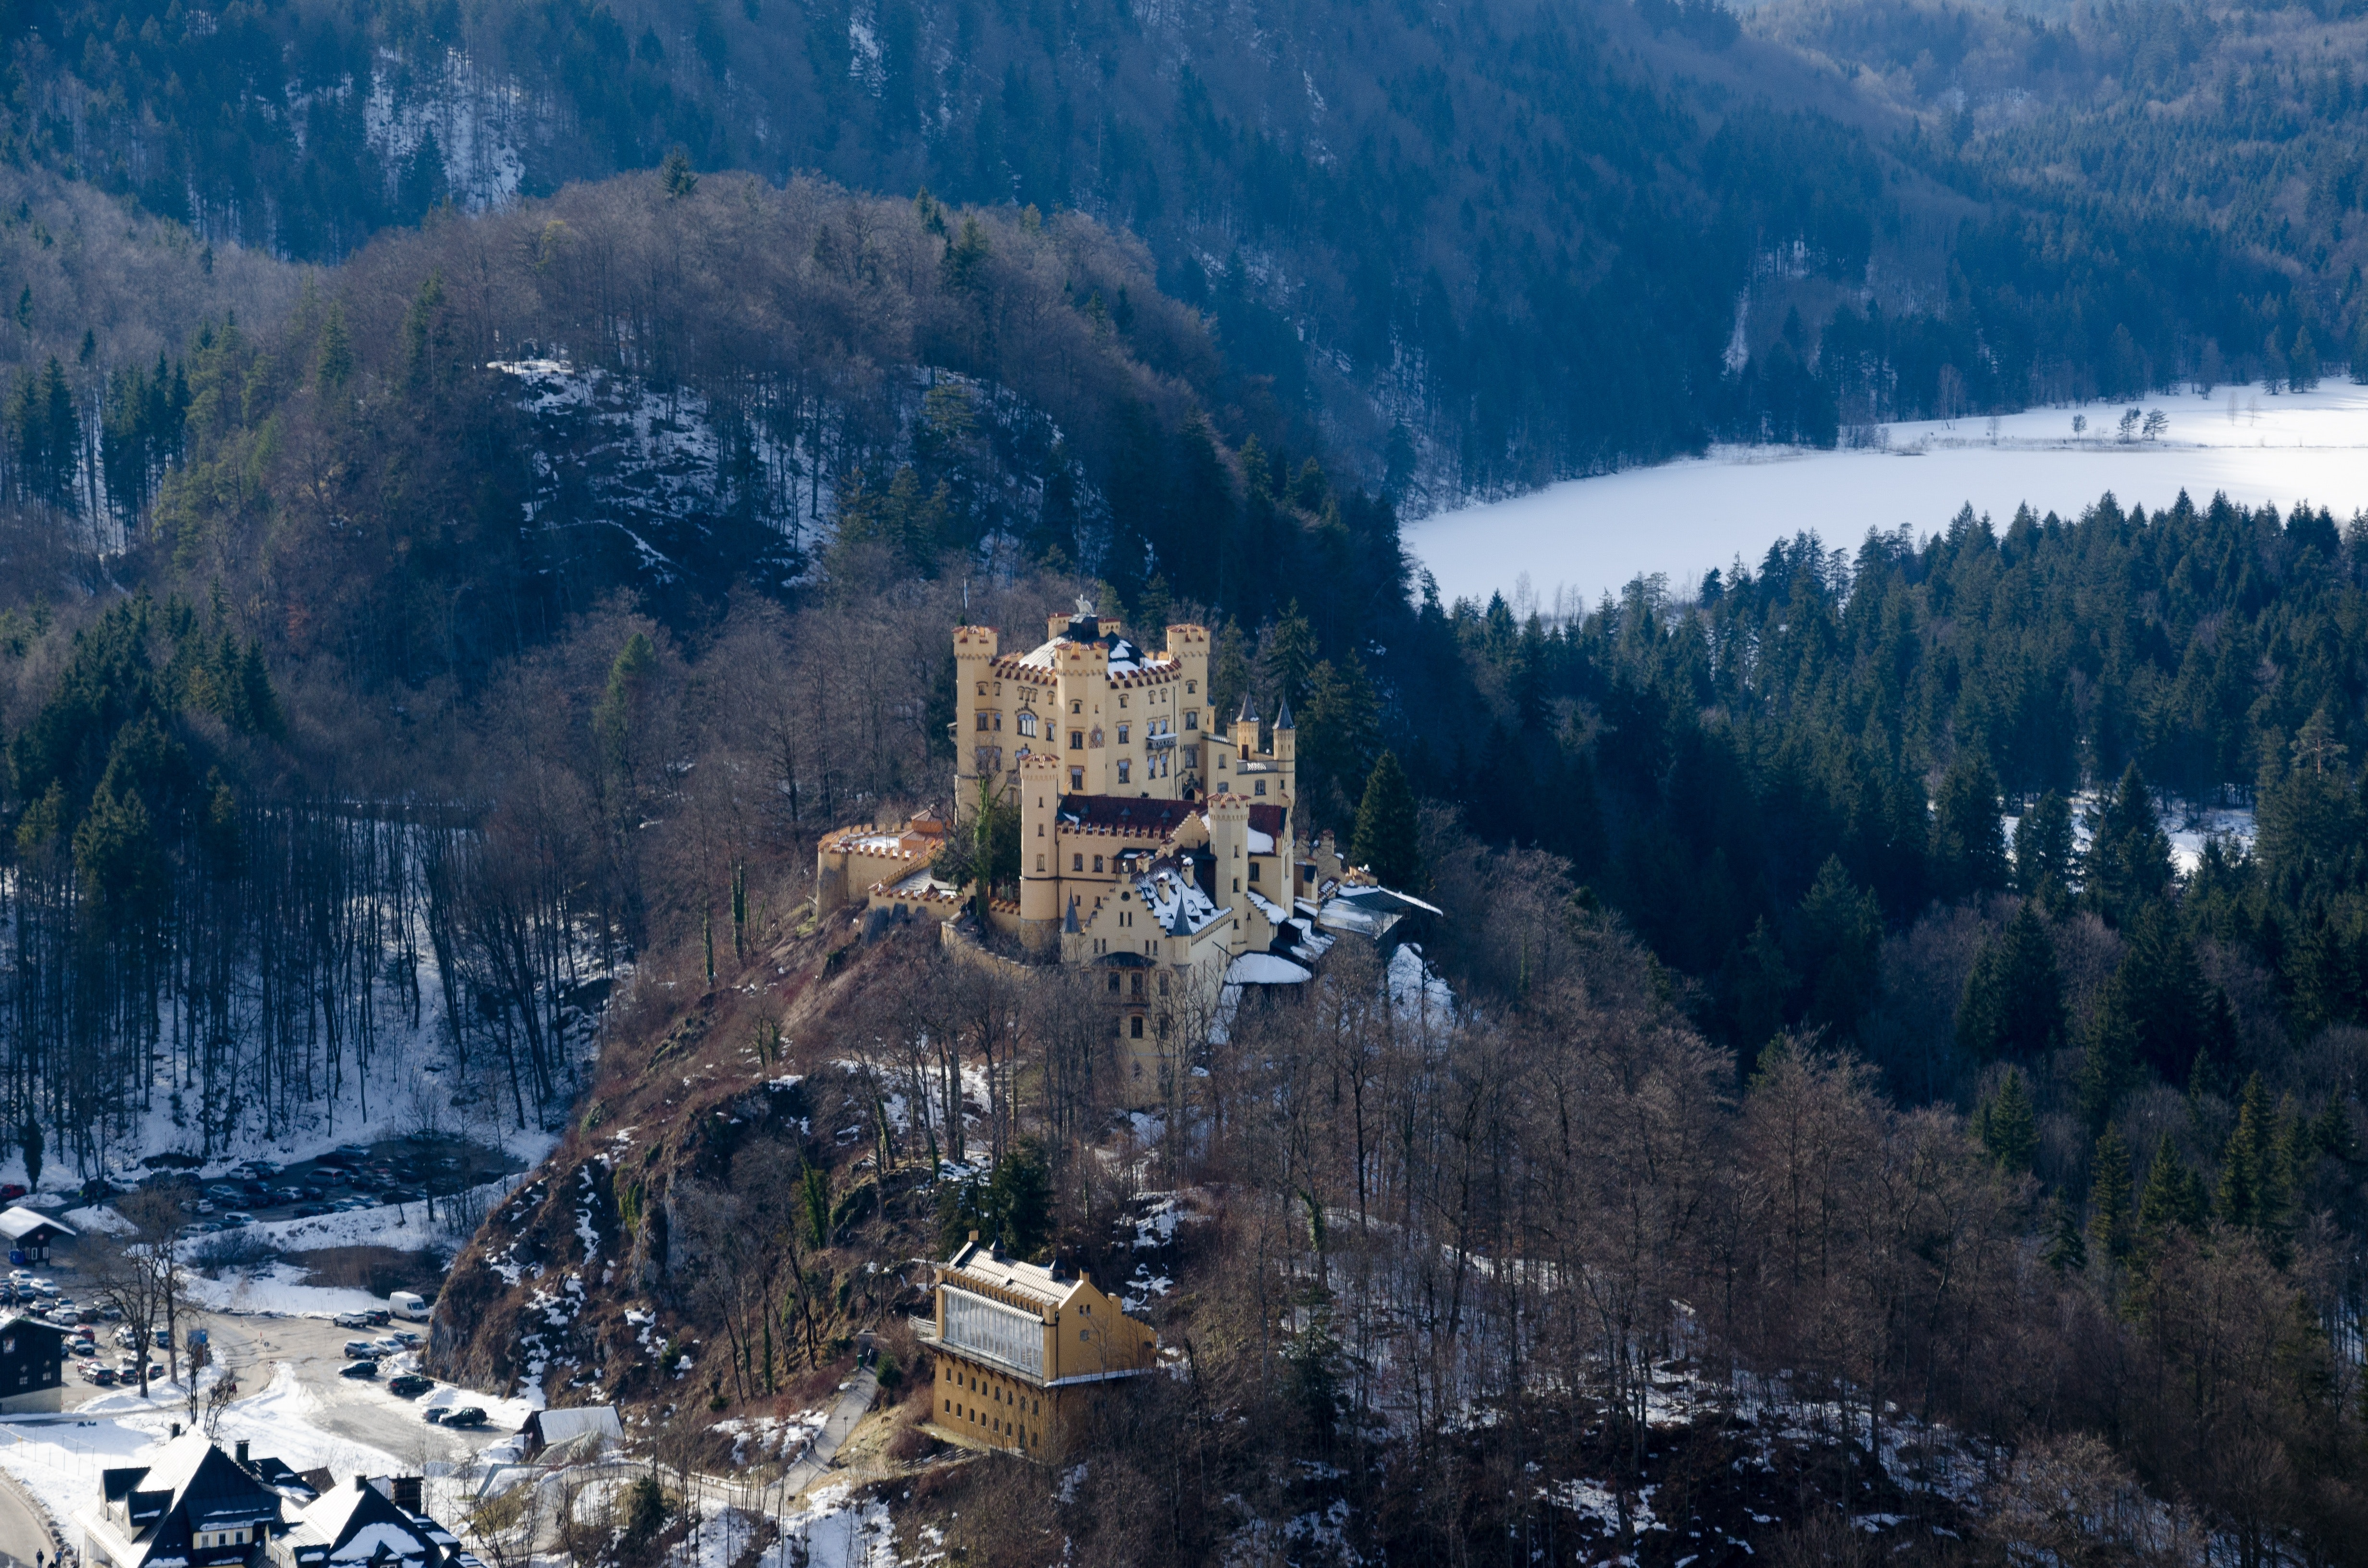 Panoramic View of Houses and Trees at Night, Castle, Winter, Water, Valley, HQ Photo